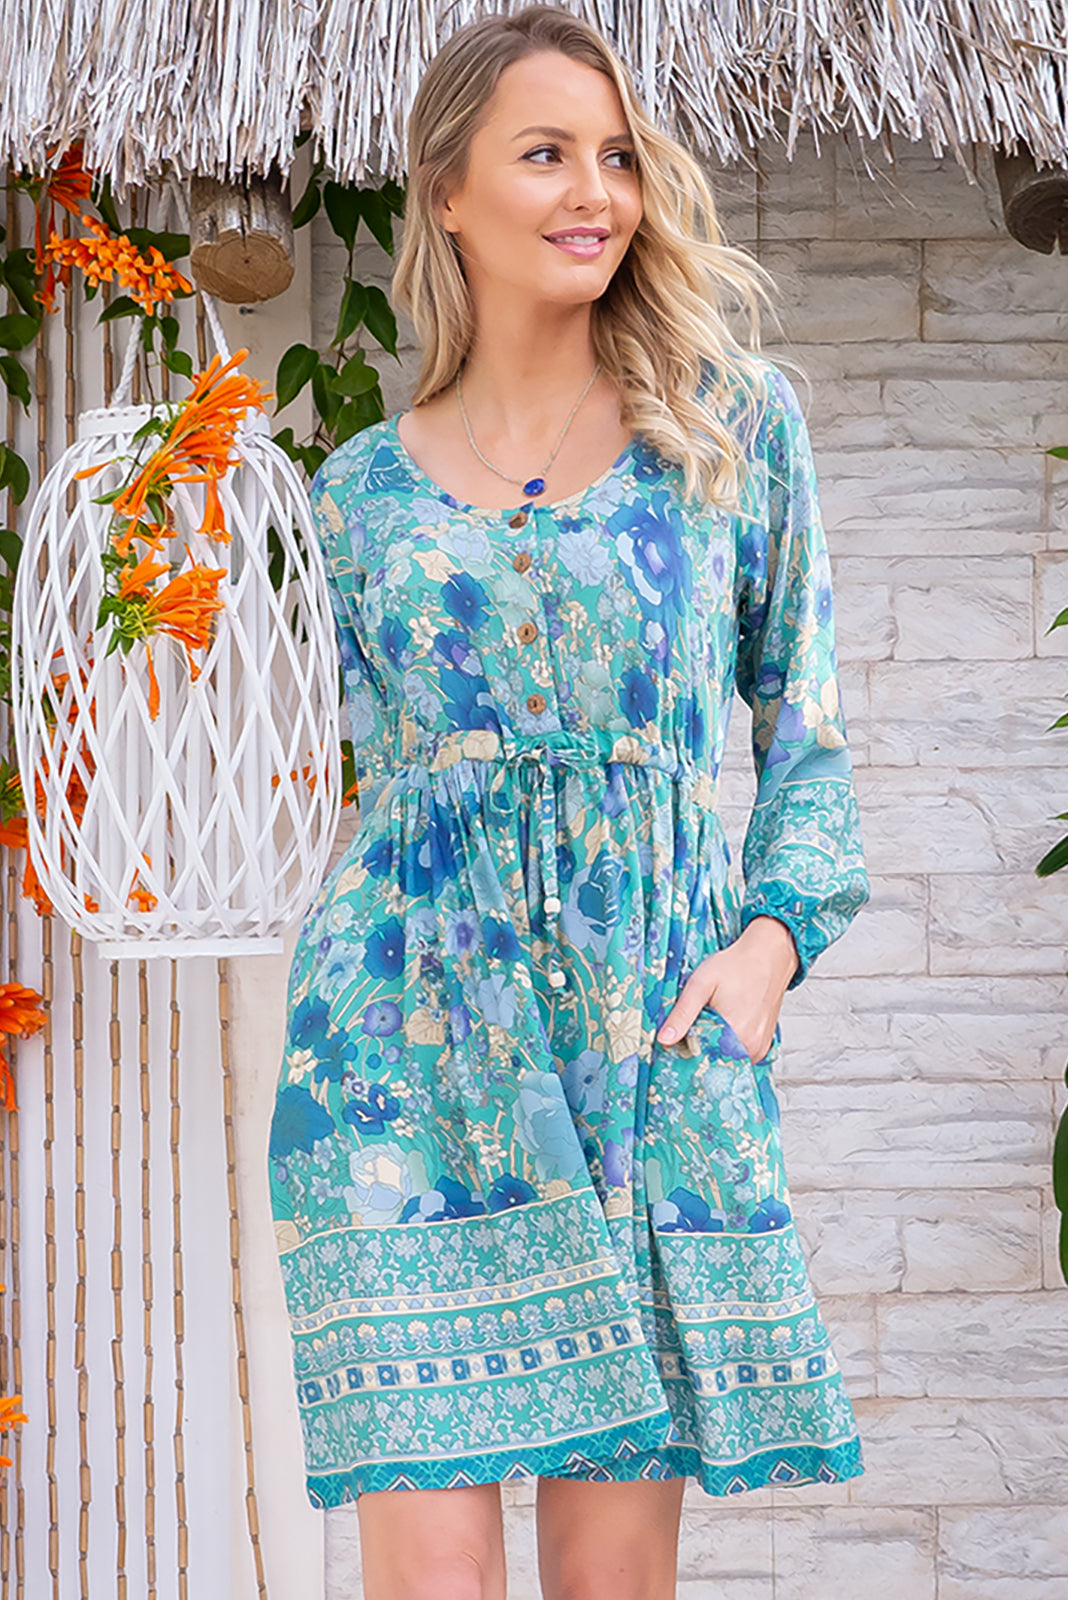 Jennifer Verte Fleur Dress is a pretty winter frock featuring functional button front to the waist, sleeve cuffs are elasticated, side pockets, adjustable drawstring waist and Woven 100% rayon in Green base with stunning blue art deco floral print, border print at hem.